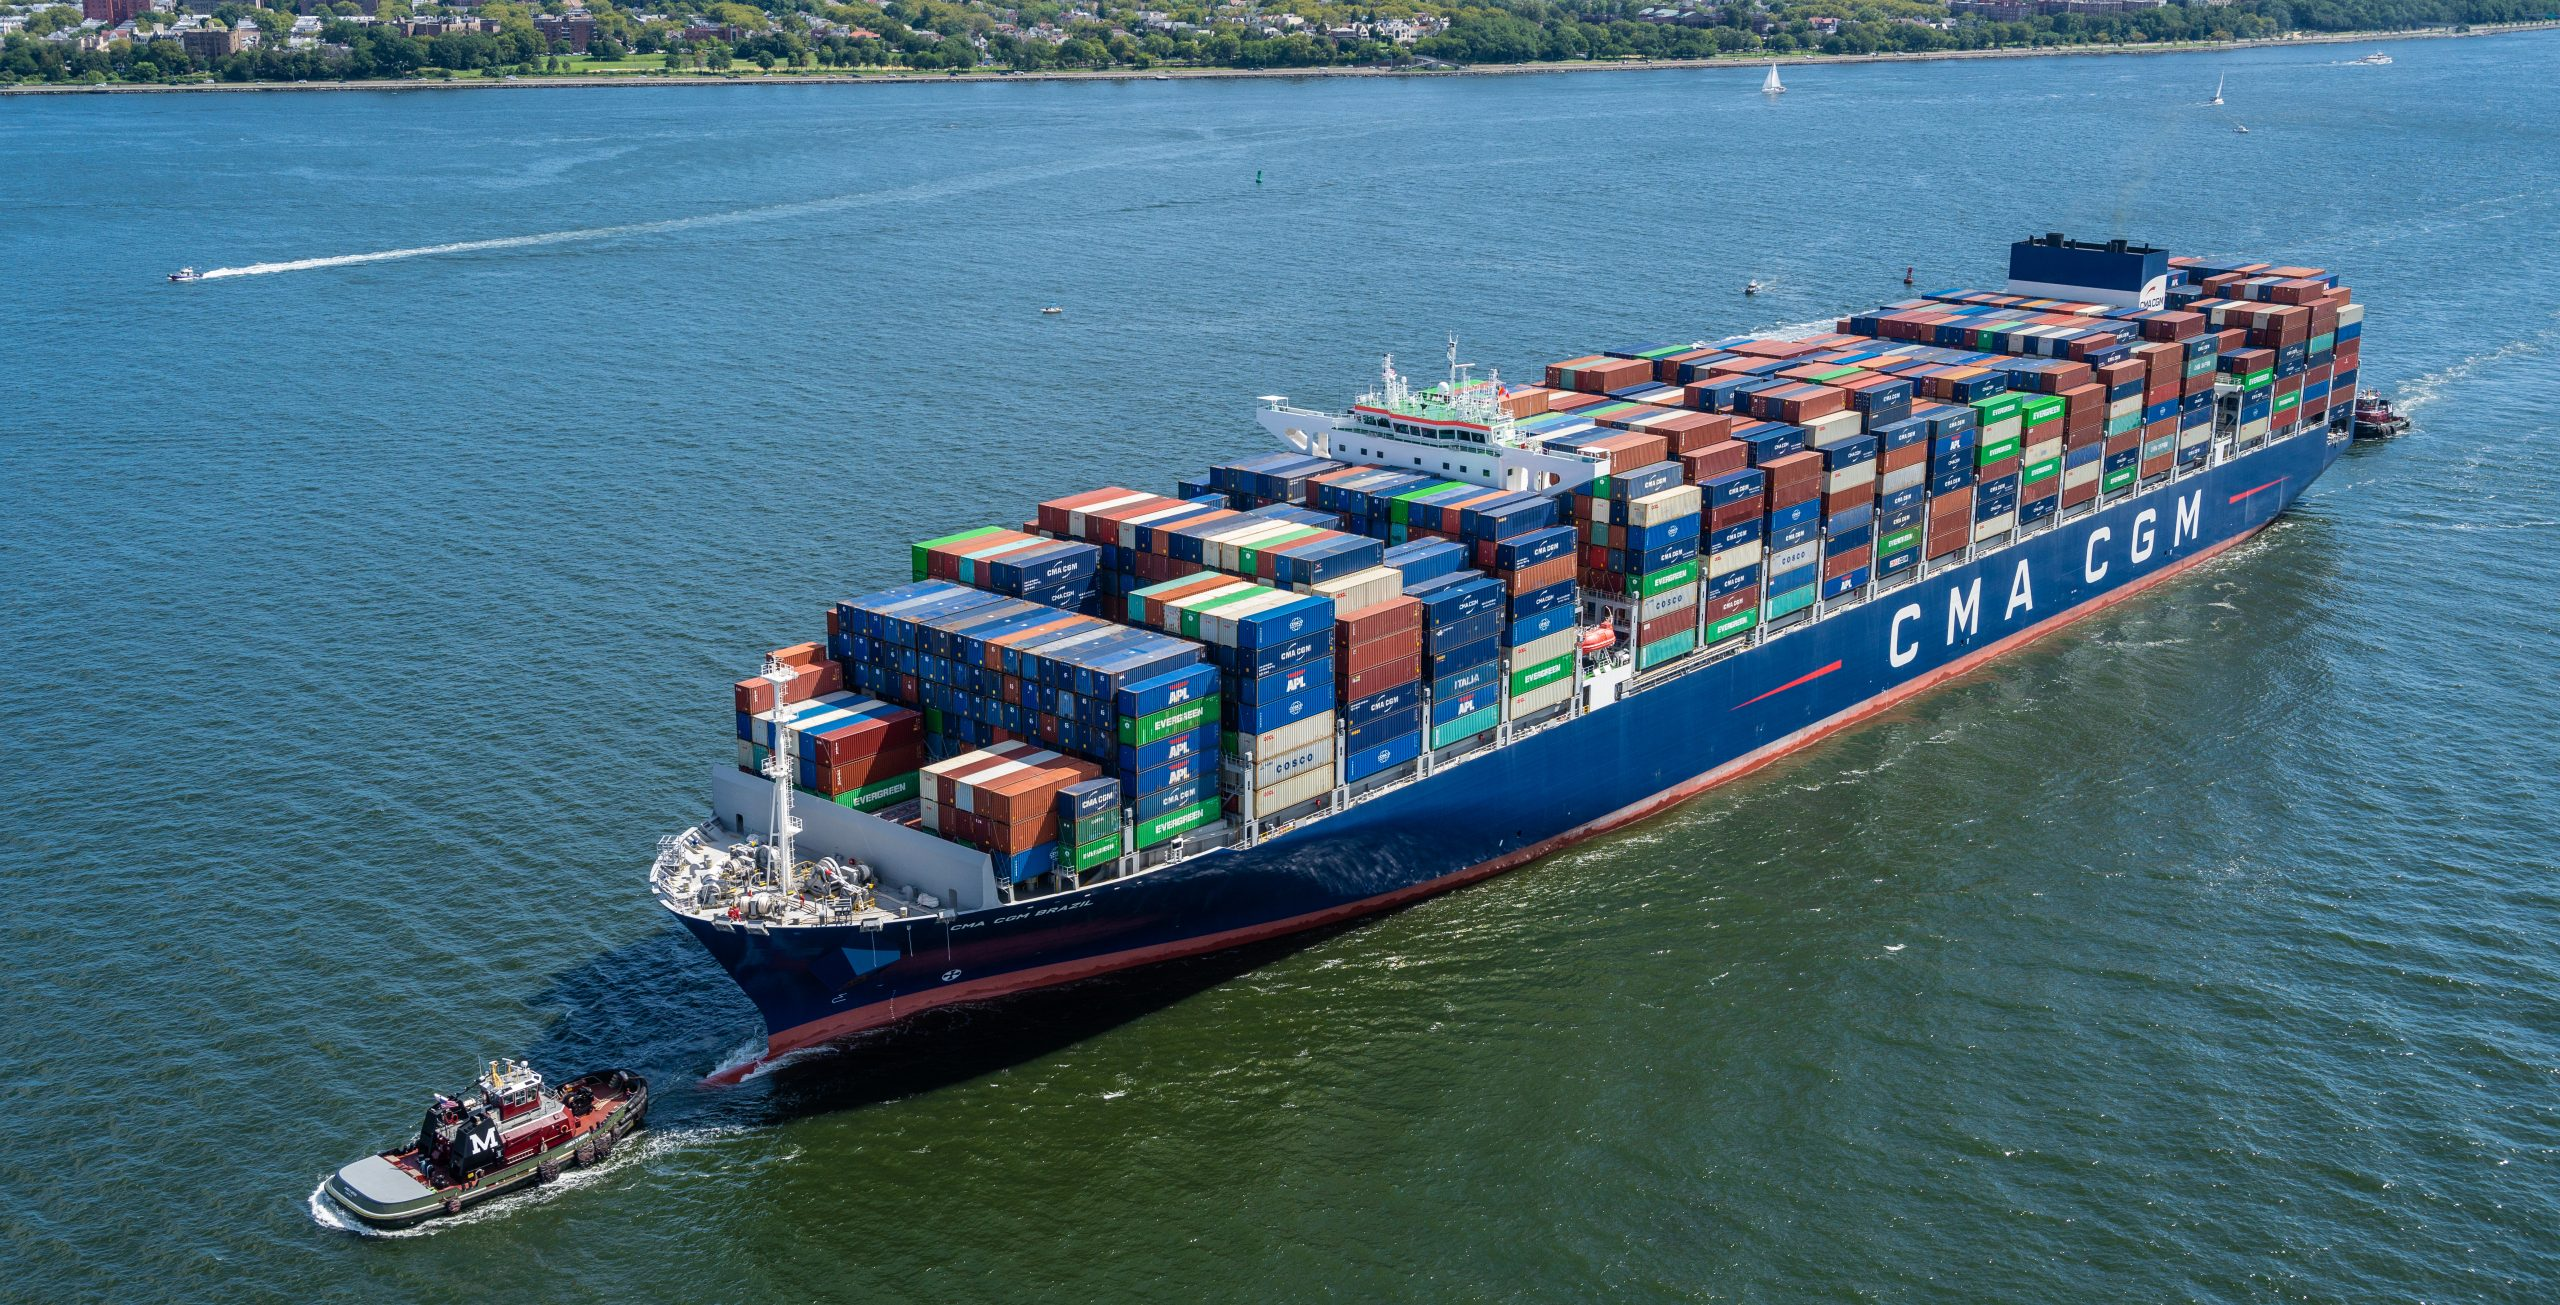 Savannah serves largest vessel ever, the 15,000+ TEU Brazil